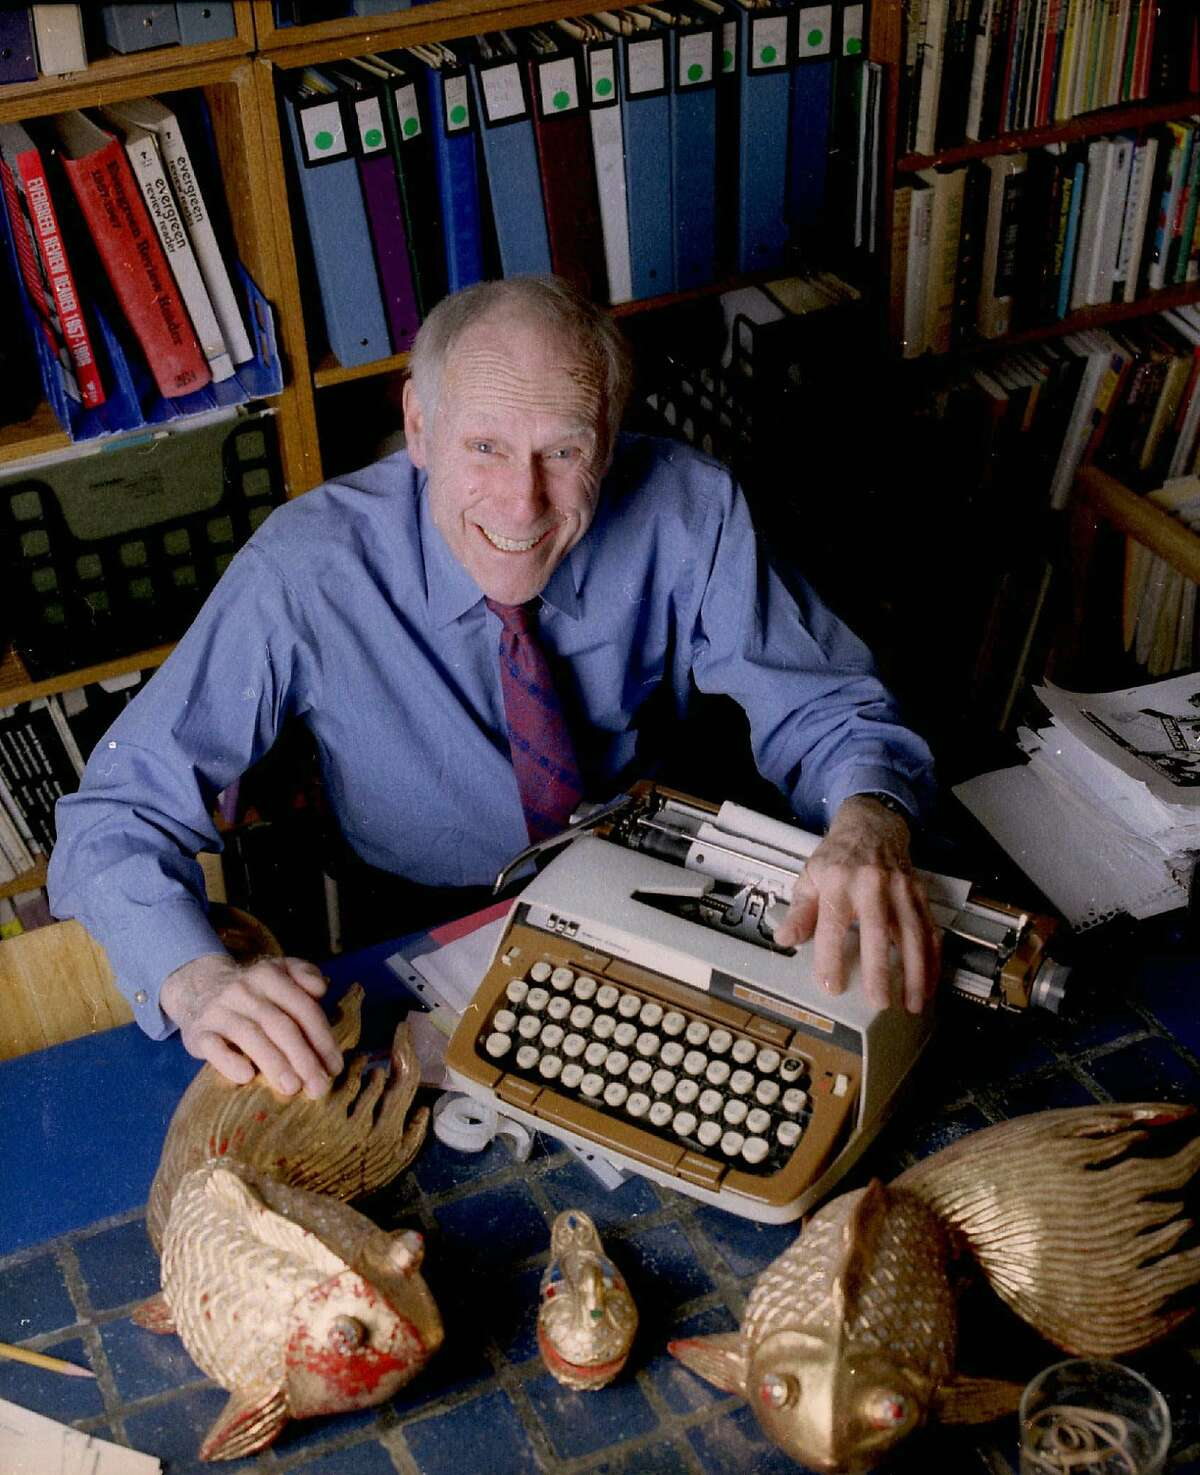 **FILE** In this Jan. 5, 1998 file photo, publisher Barney Rosset, 75, poses with some of his favorite things in his New York loft. Rosset, the publisher and First Amendment defender whose battles on behalf of Henry Miller's